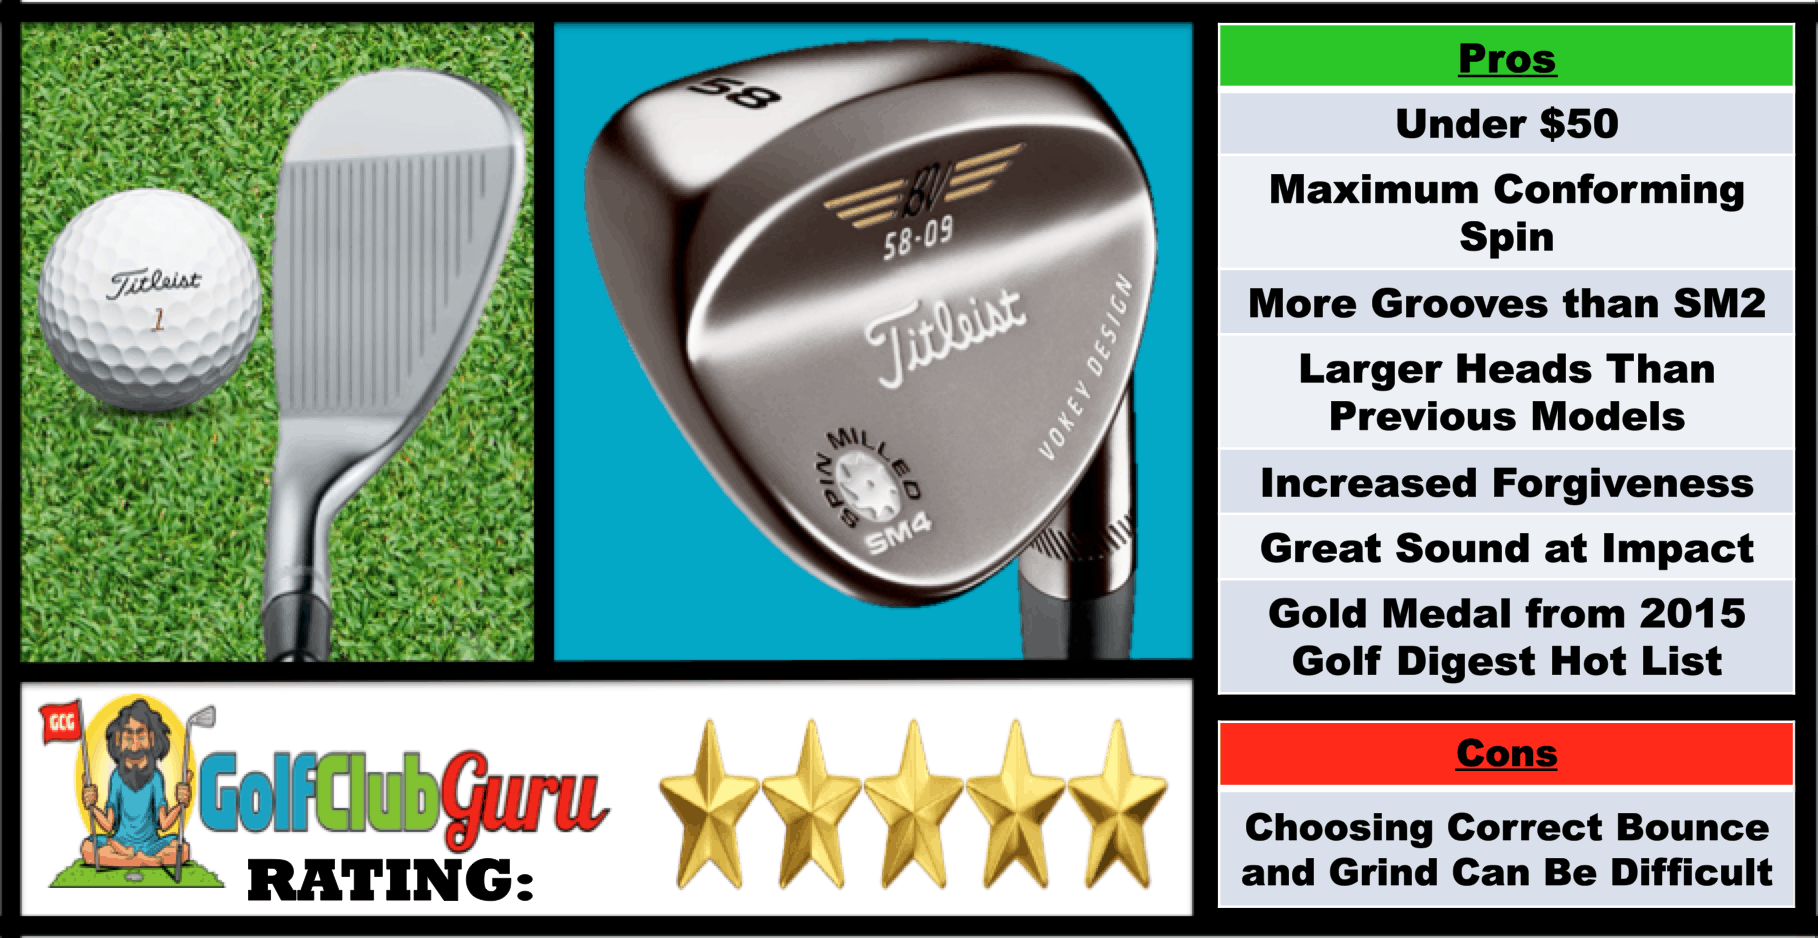 The following image is the list of pros and cons and pictures of the second best value on a budget wedge, the Titleist Vokey SM4.